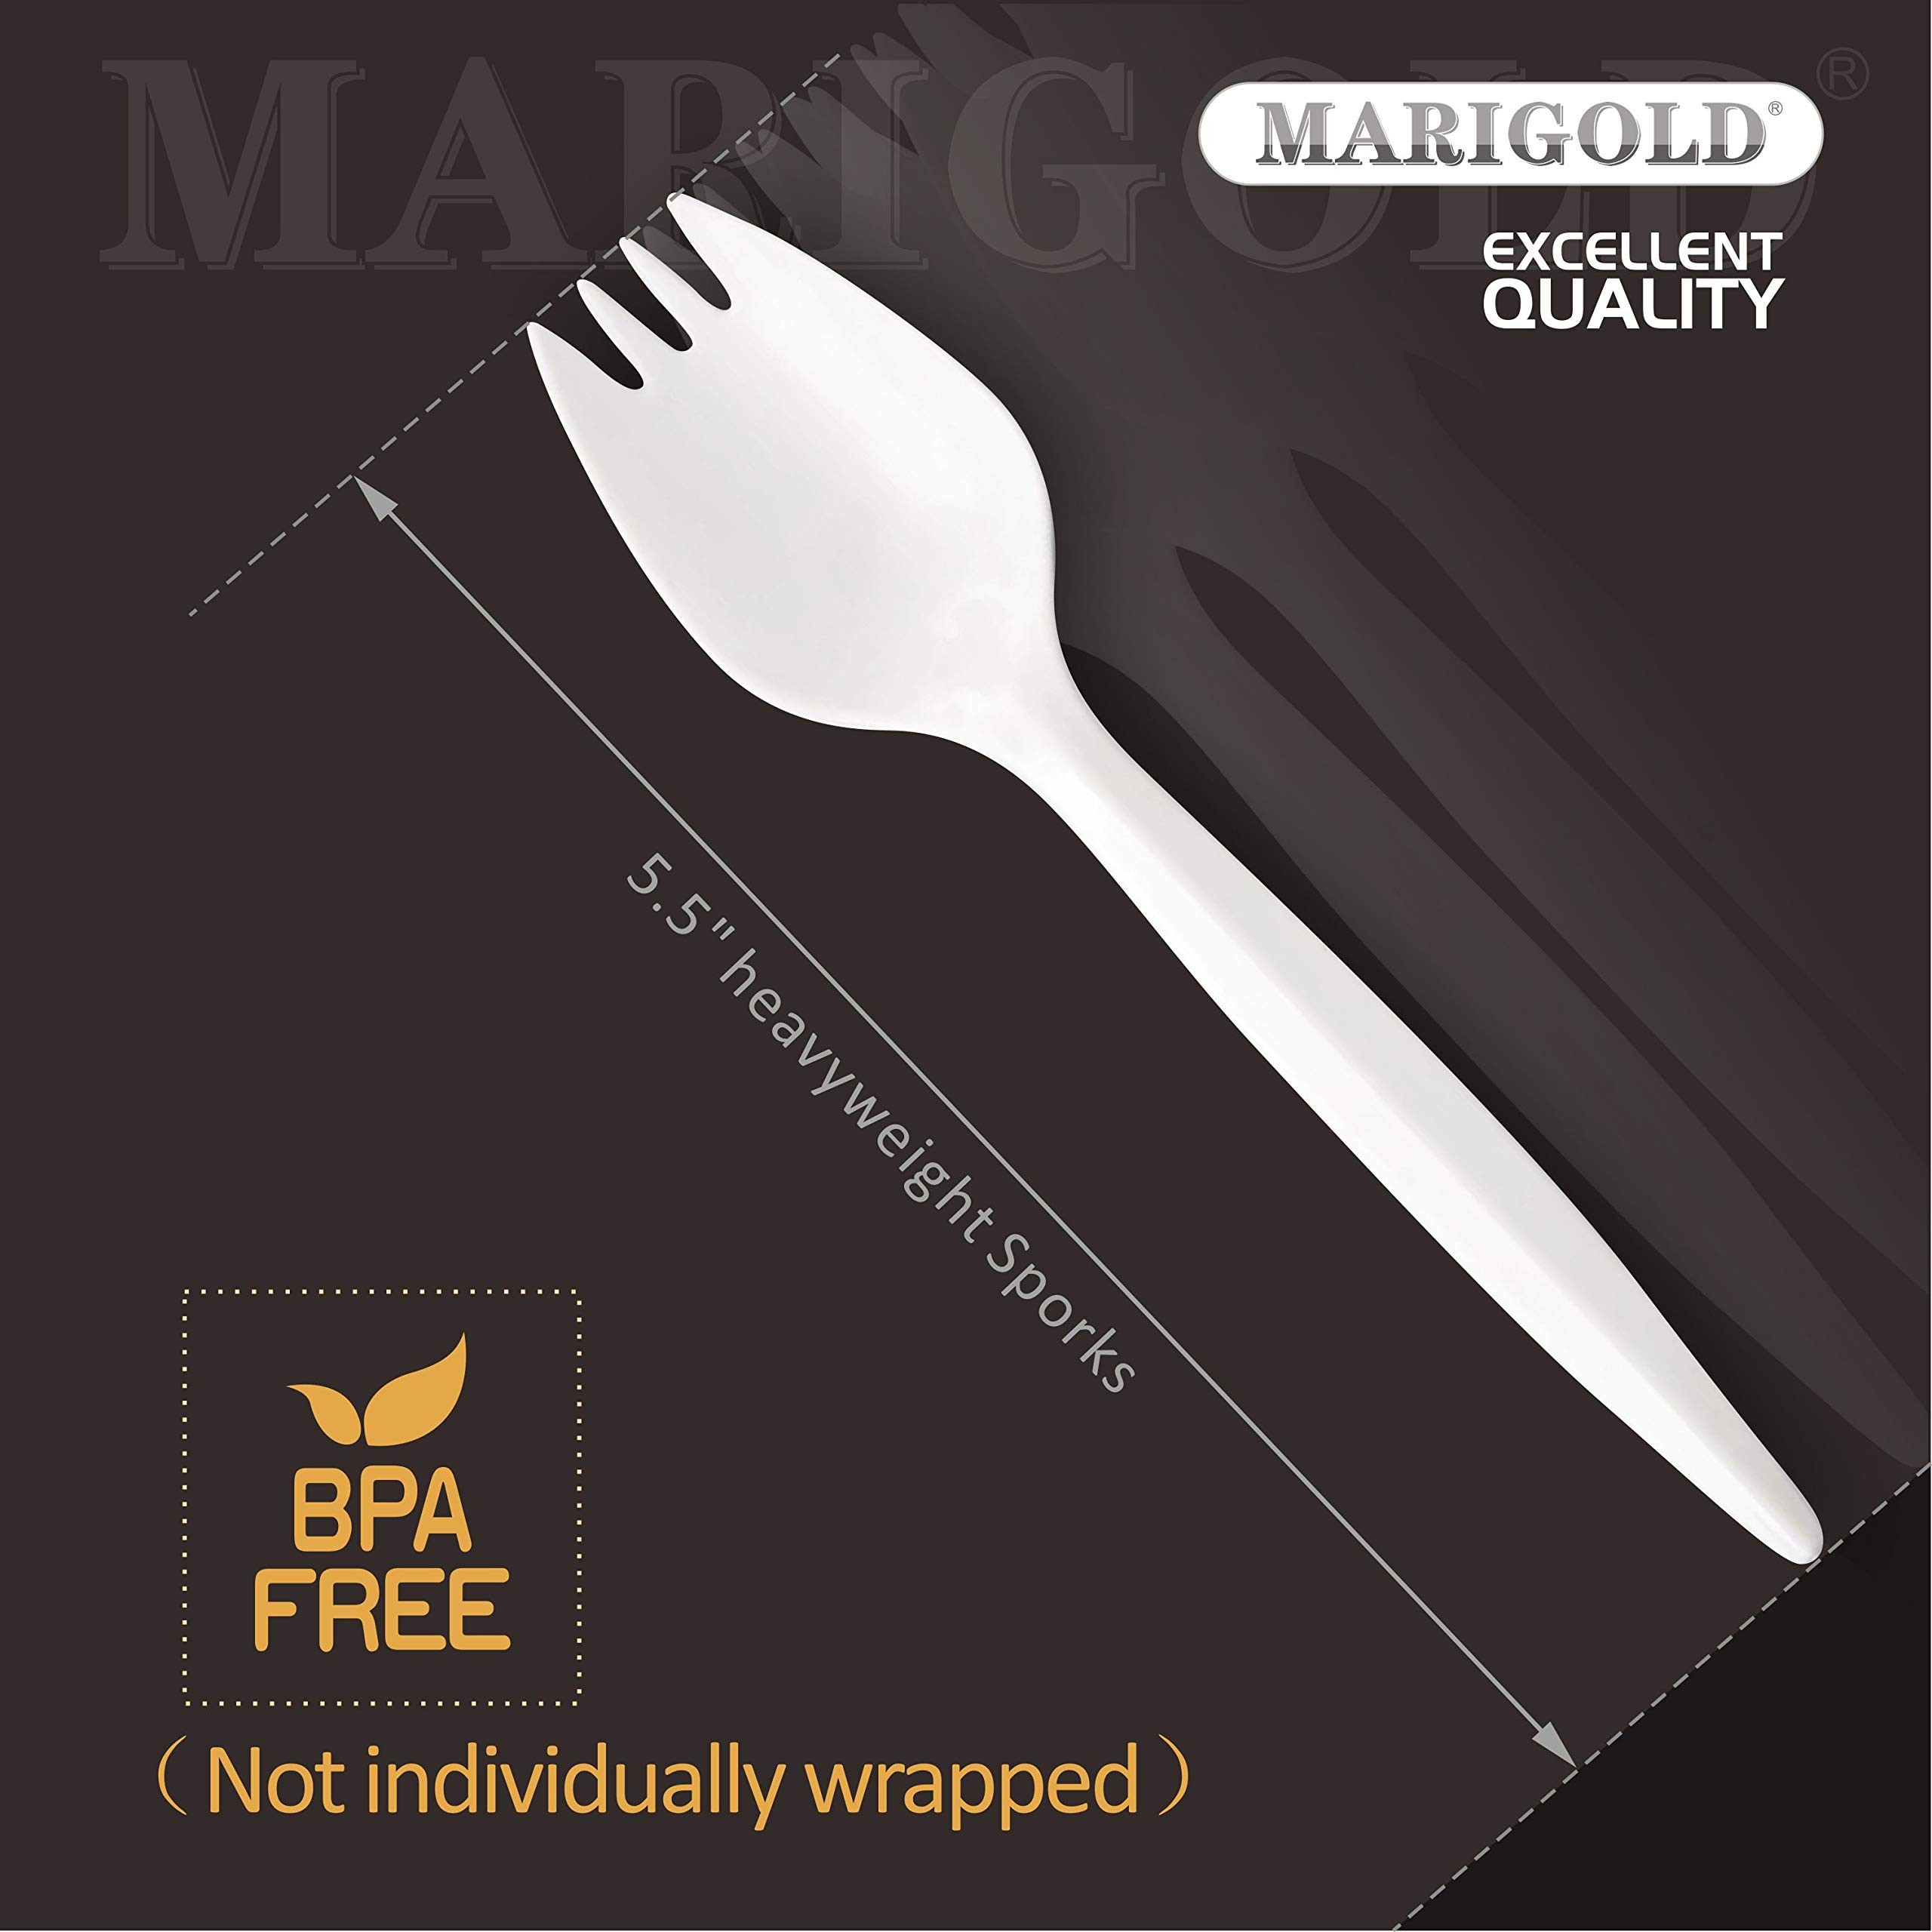 Heavy-weight Disposable Sporks 300Pk BPA-Free - MARIGOLD Recyclable cutlery, Eco-Friendly and Kid-Safe Utensils, Great for School Lunch, Picnics or Restaurant and Party Supply Spoons and Forks